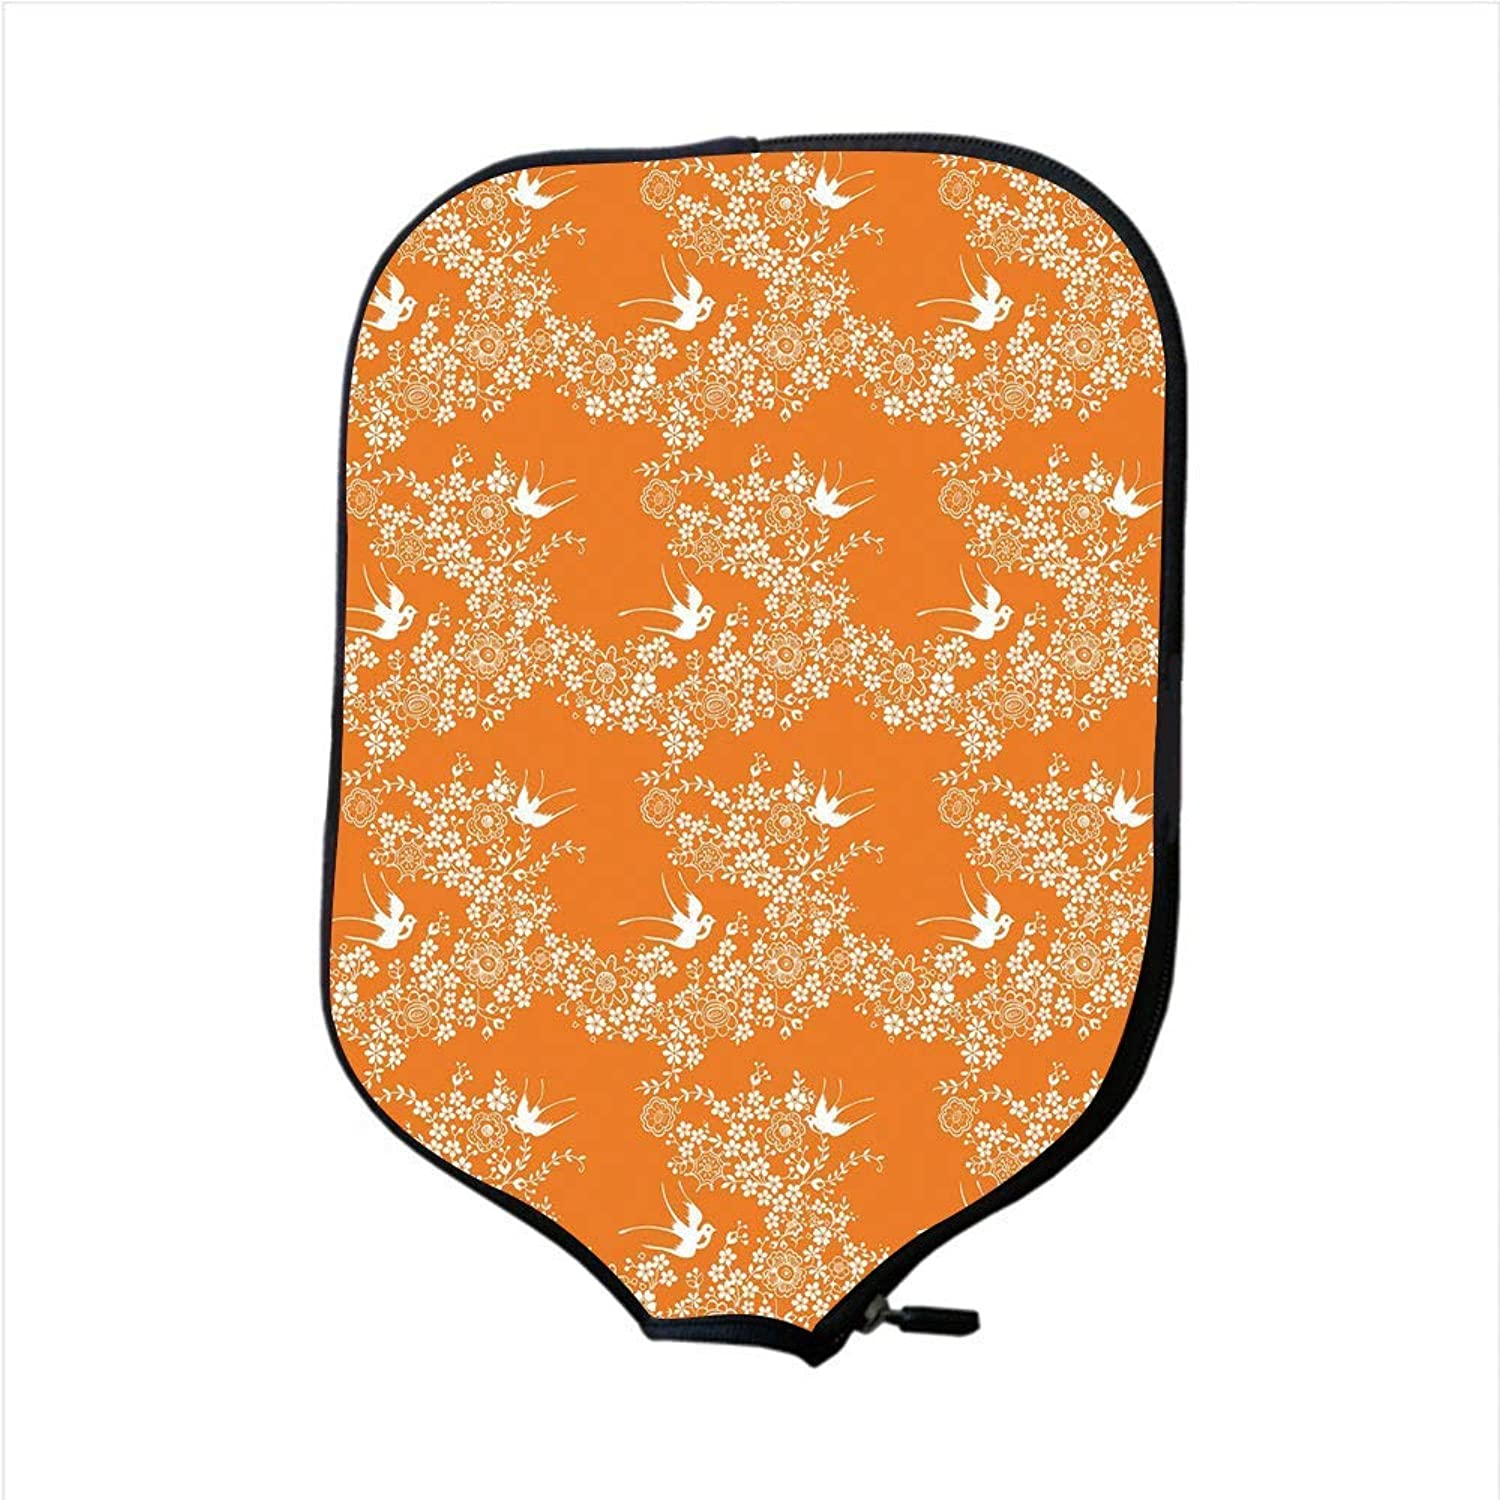 Fine Neoprene Pickleball Paddle Racket Cover Case,orange,Asian Style Spring Meadow Pattern with Branches in Full Blossom with Birds Nature,orange White,Fit for Most Rackets